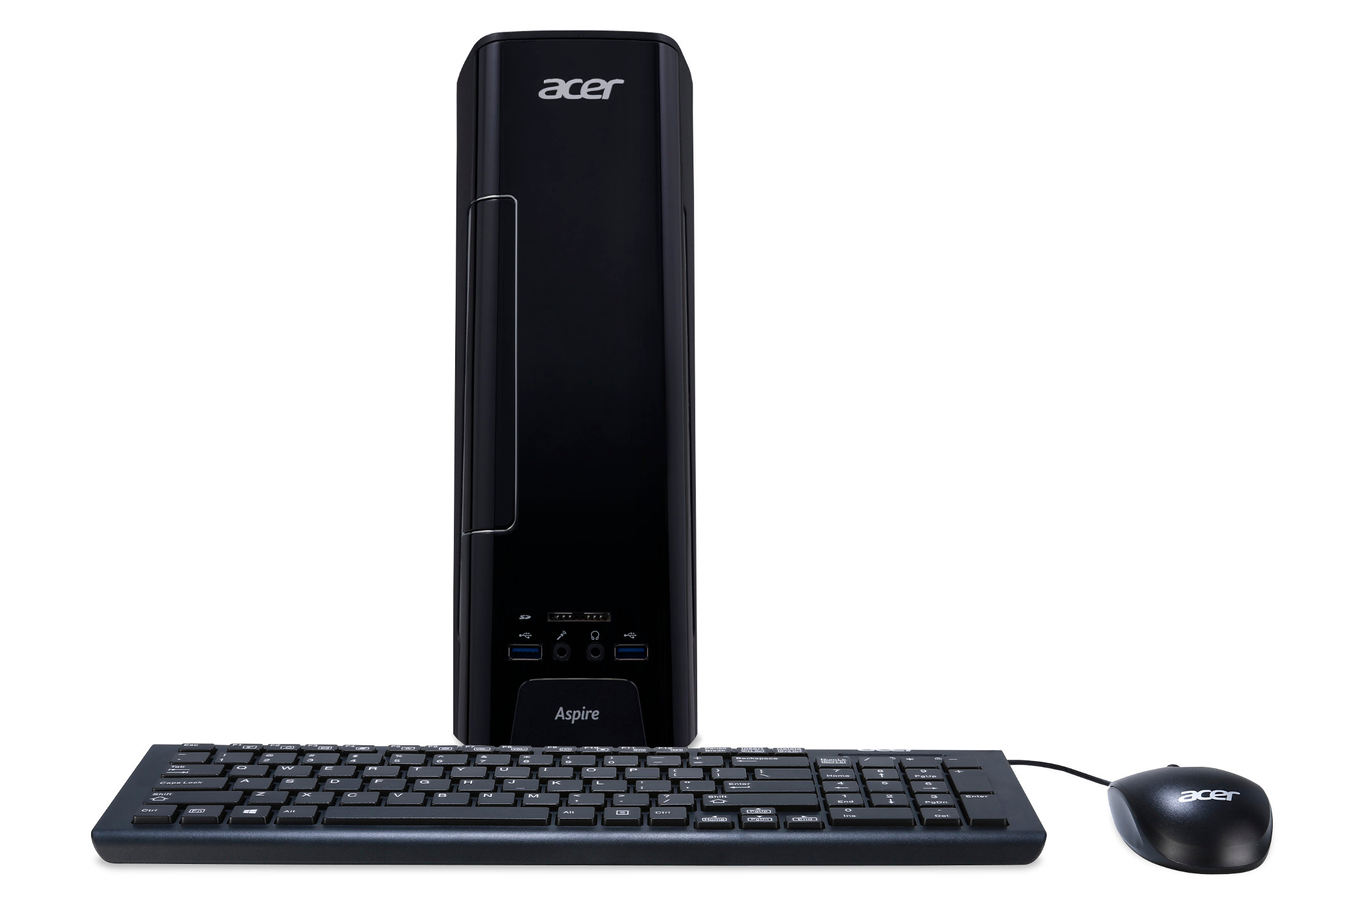 pc de bureau acer aspire xc 780 002 aspire xc 780 002 4312040 darty. Black Bedroom Furniture Sets. Home Design Ideas